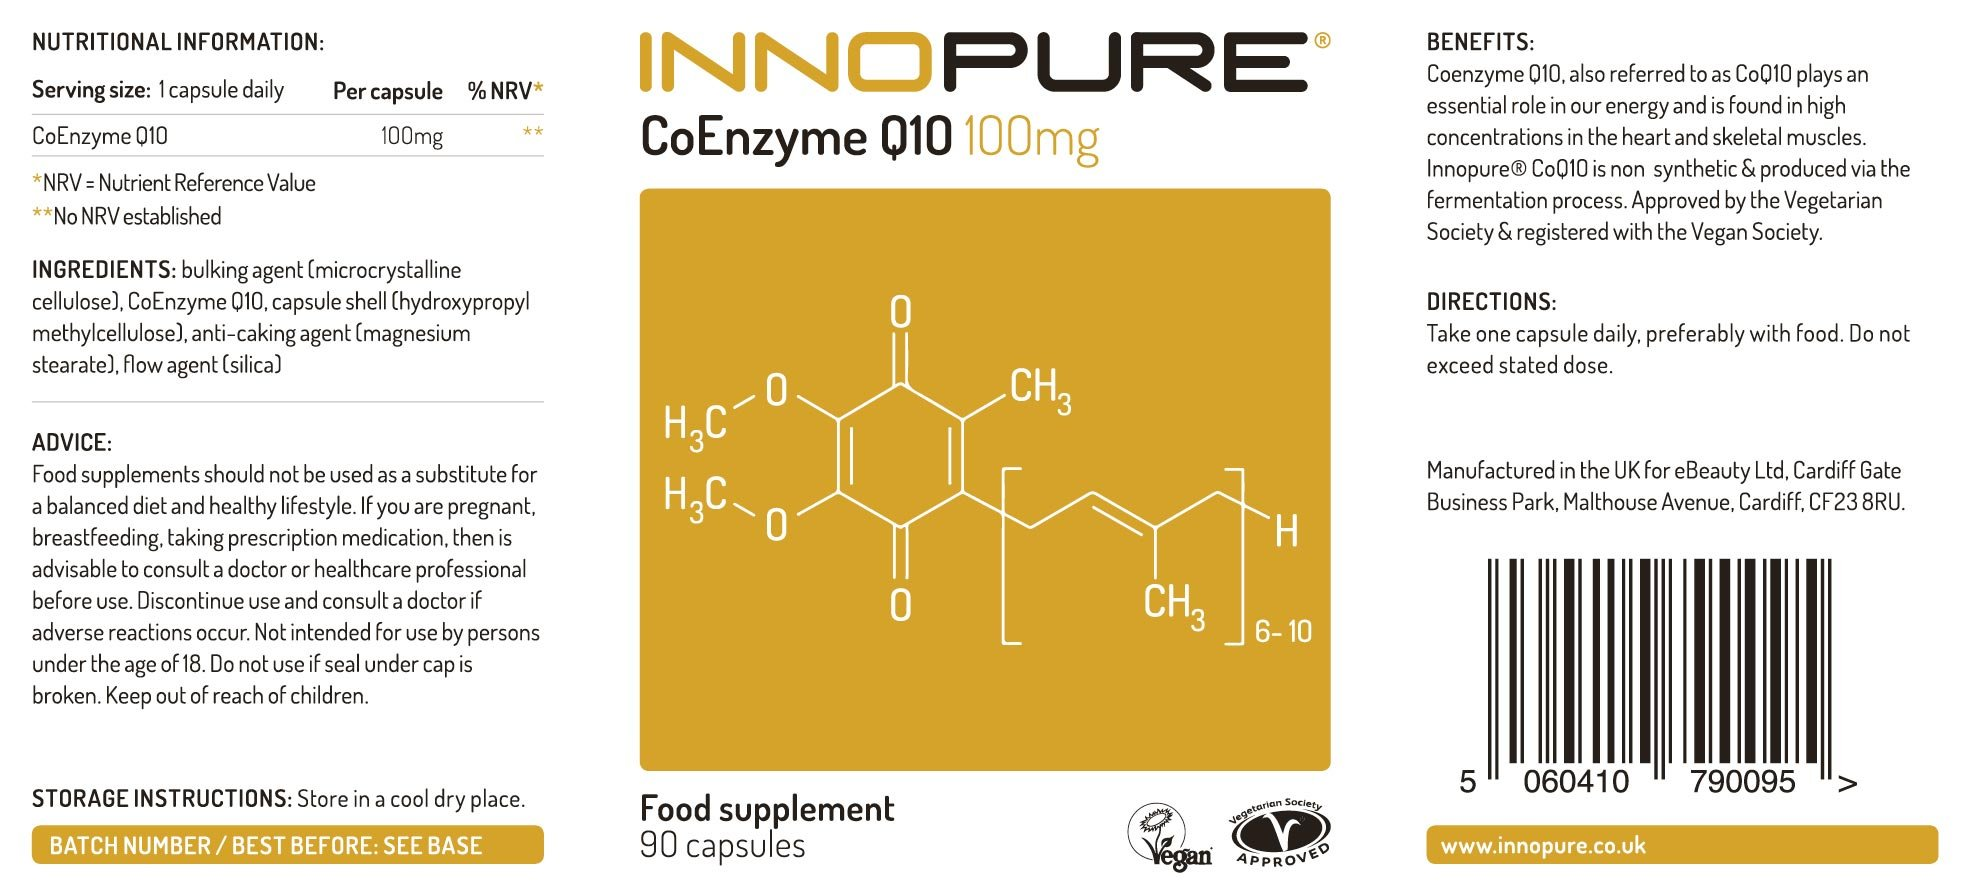 71WF7JNz45L - CoQ10 Pure Coenzyme Q10 100mg, Naturally Fermented, Vegan Society Approved, 90 Capsules, Made in The UK by Innopure